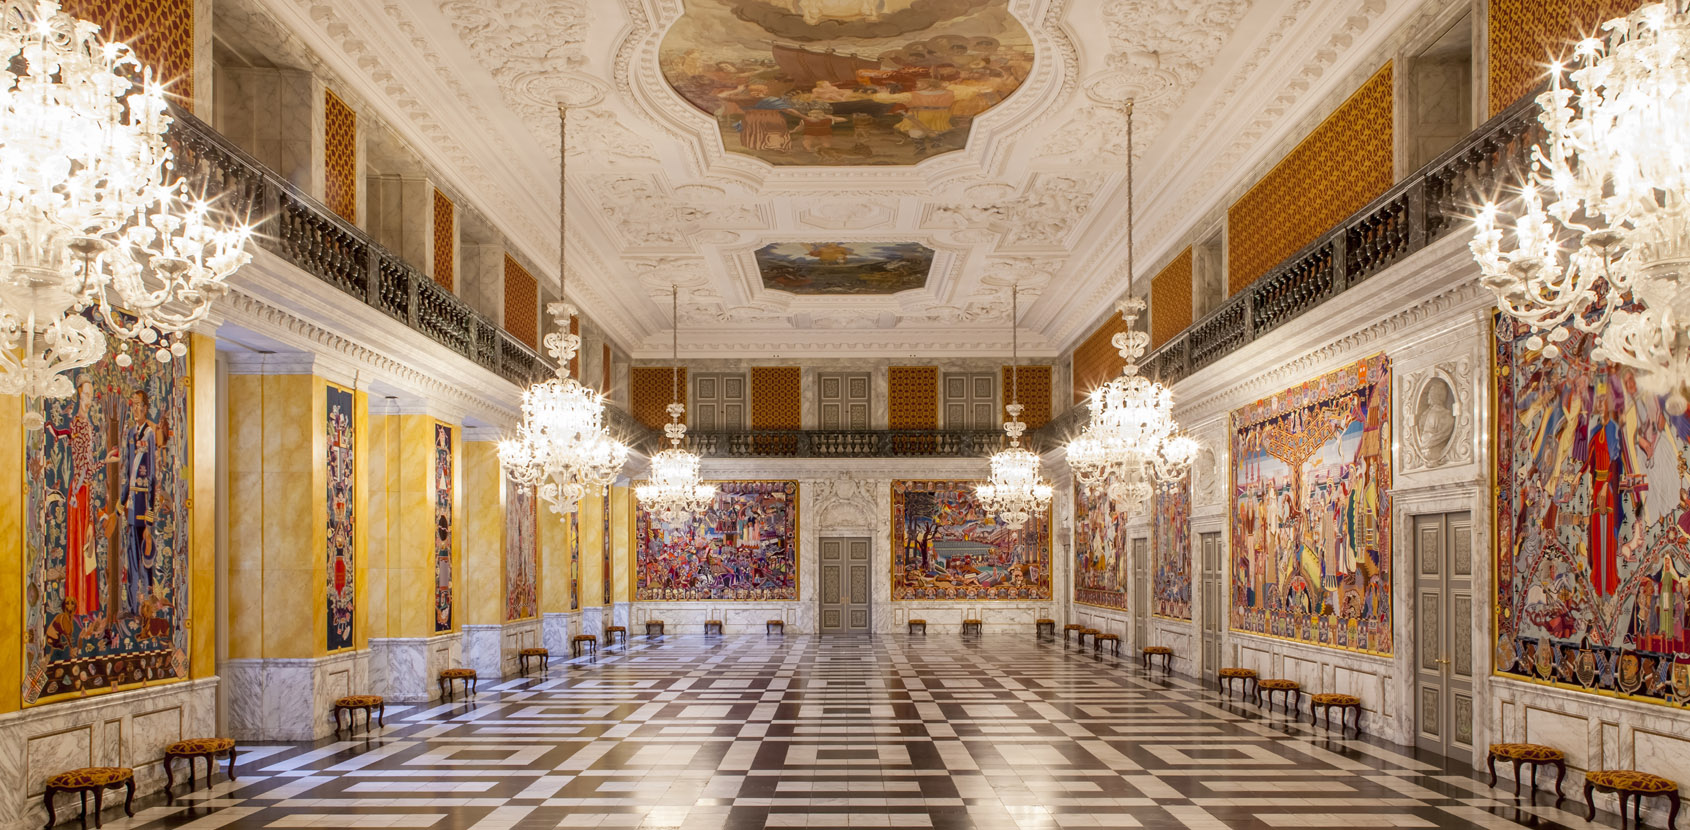 The Great Hall at Christiansborg Palace photo Mikkel Grønlund